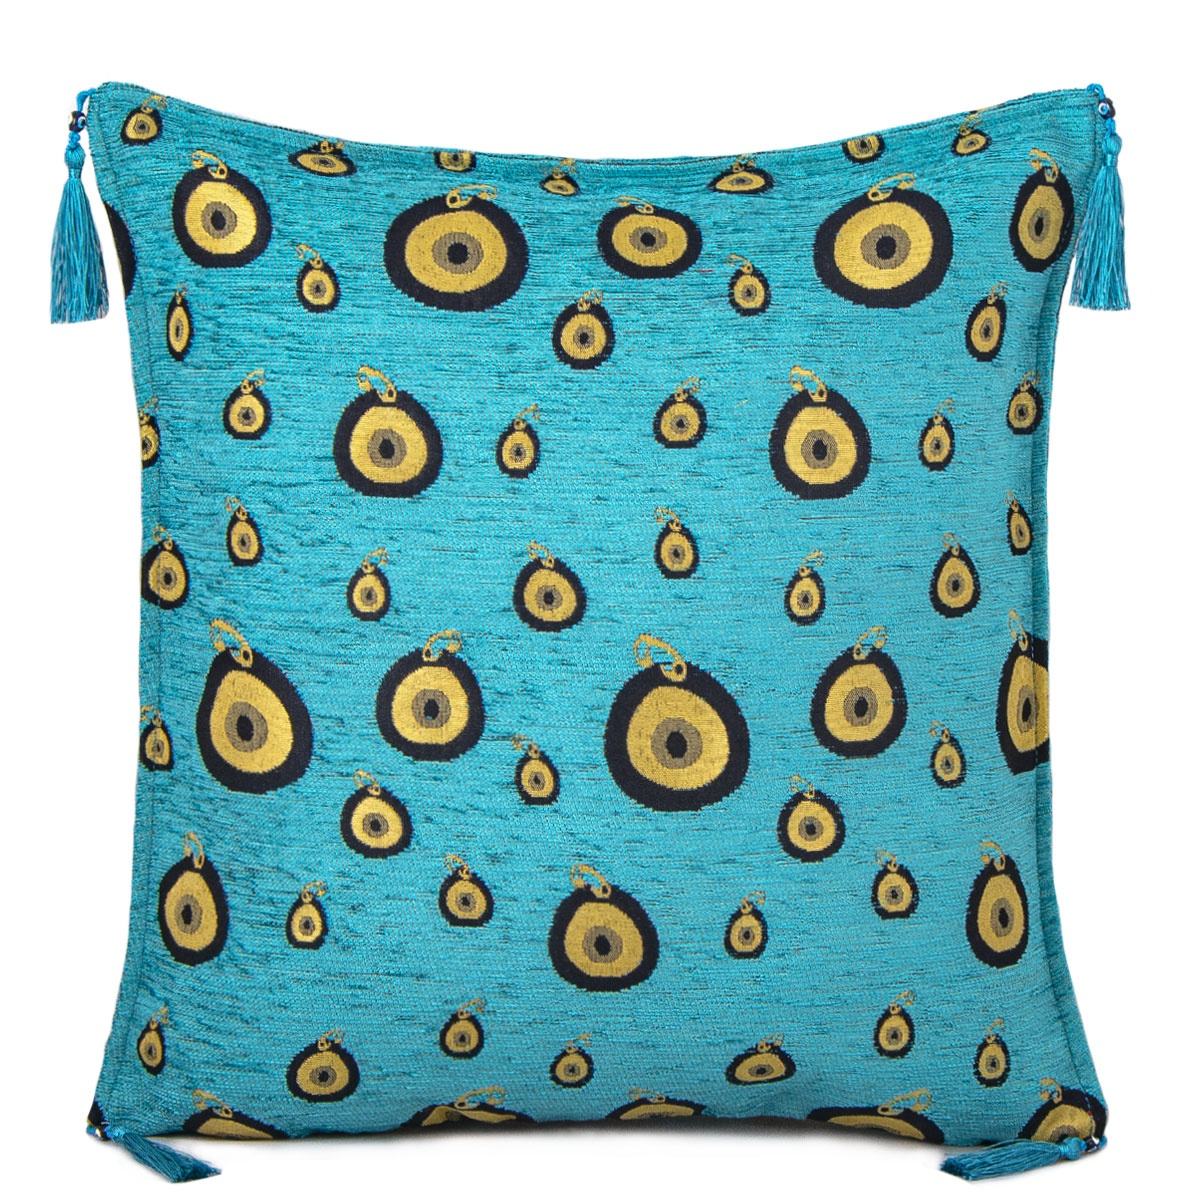 evil eye nazar designed turquoise turkish ottoman cushion pillow cover buy cushion covers design pattern turkish pillows and cushions turkish